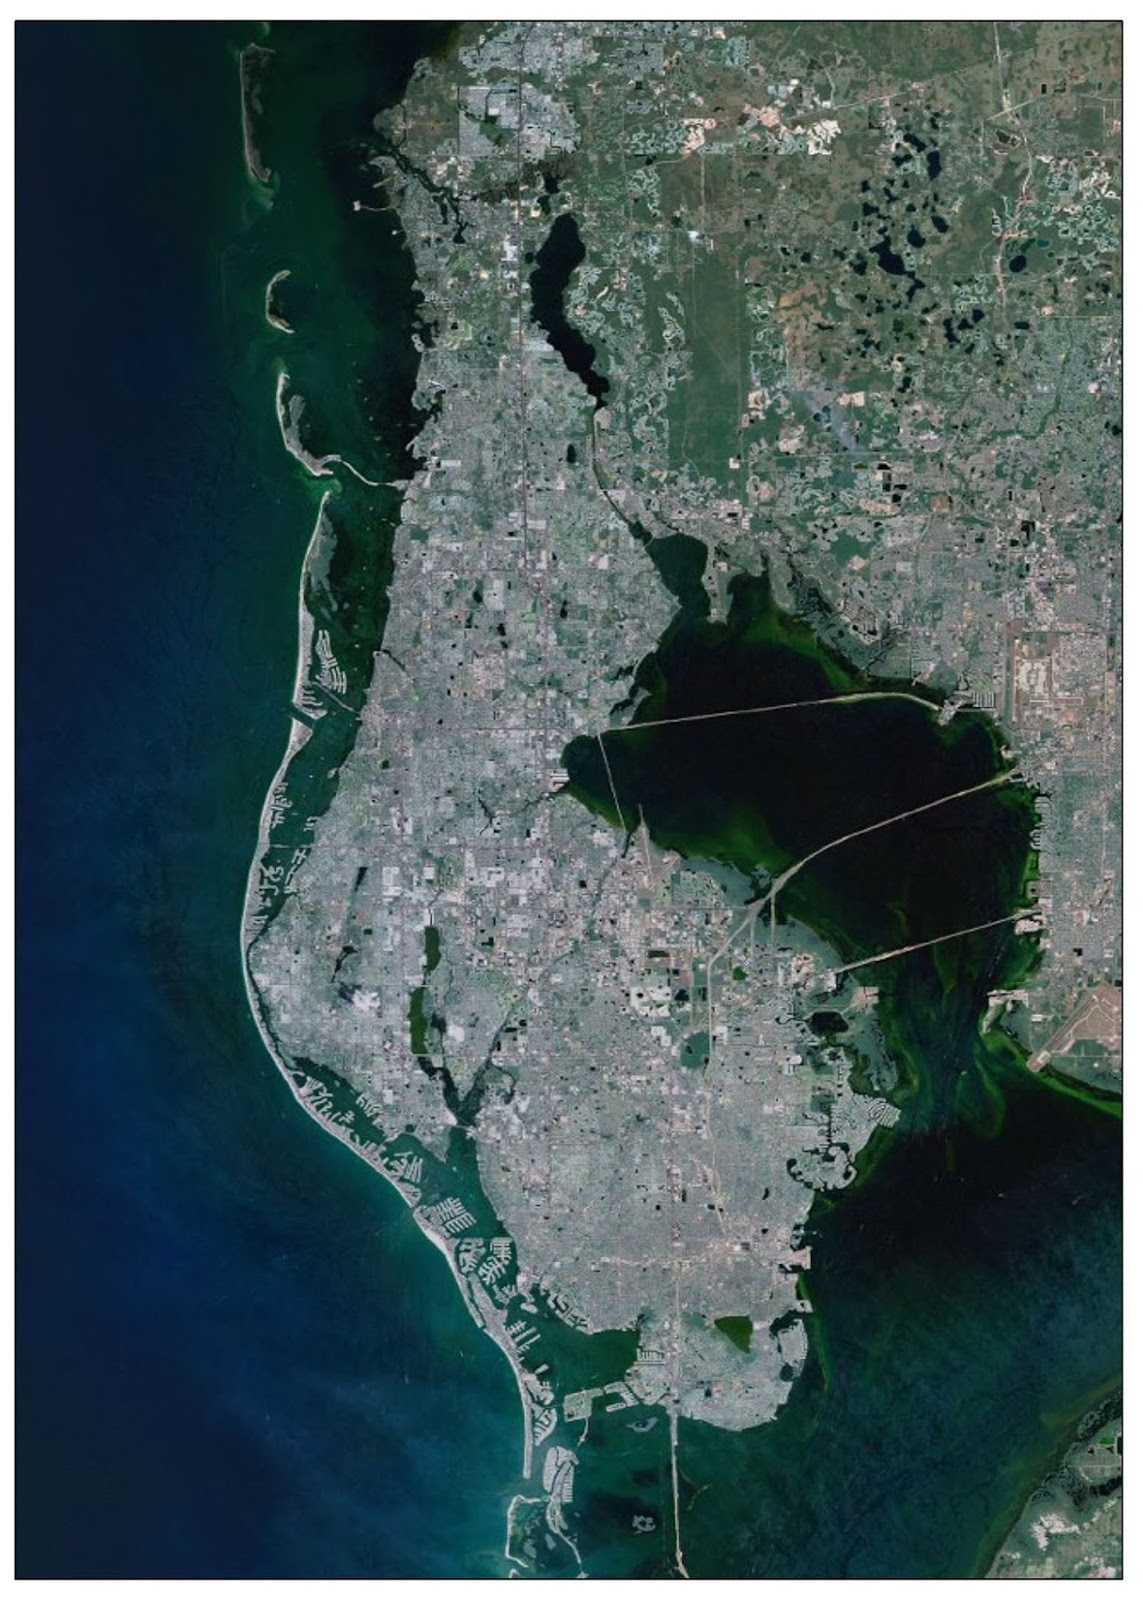 west of lake in the northern portion of the map it is in a part of florida where natural sinkholes are